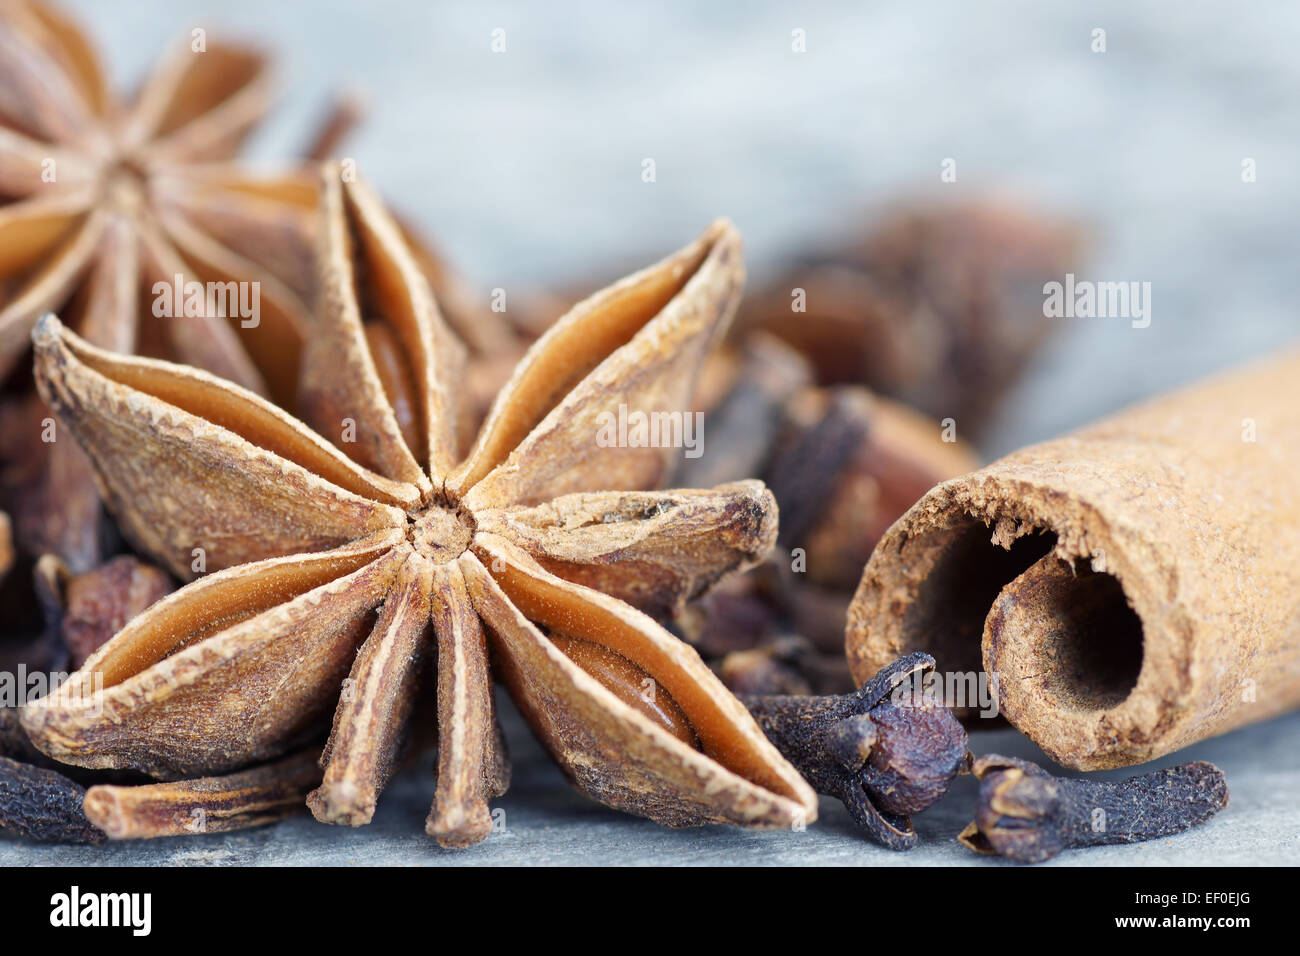 Anise star, cinnamon sticks, and cloves on old grey wood closeup - Stock Image